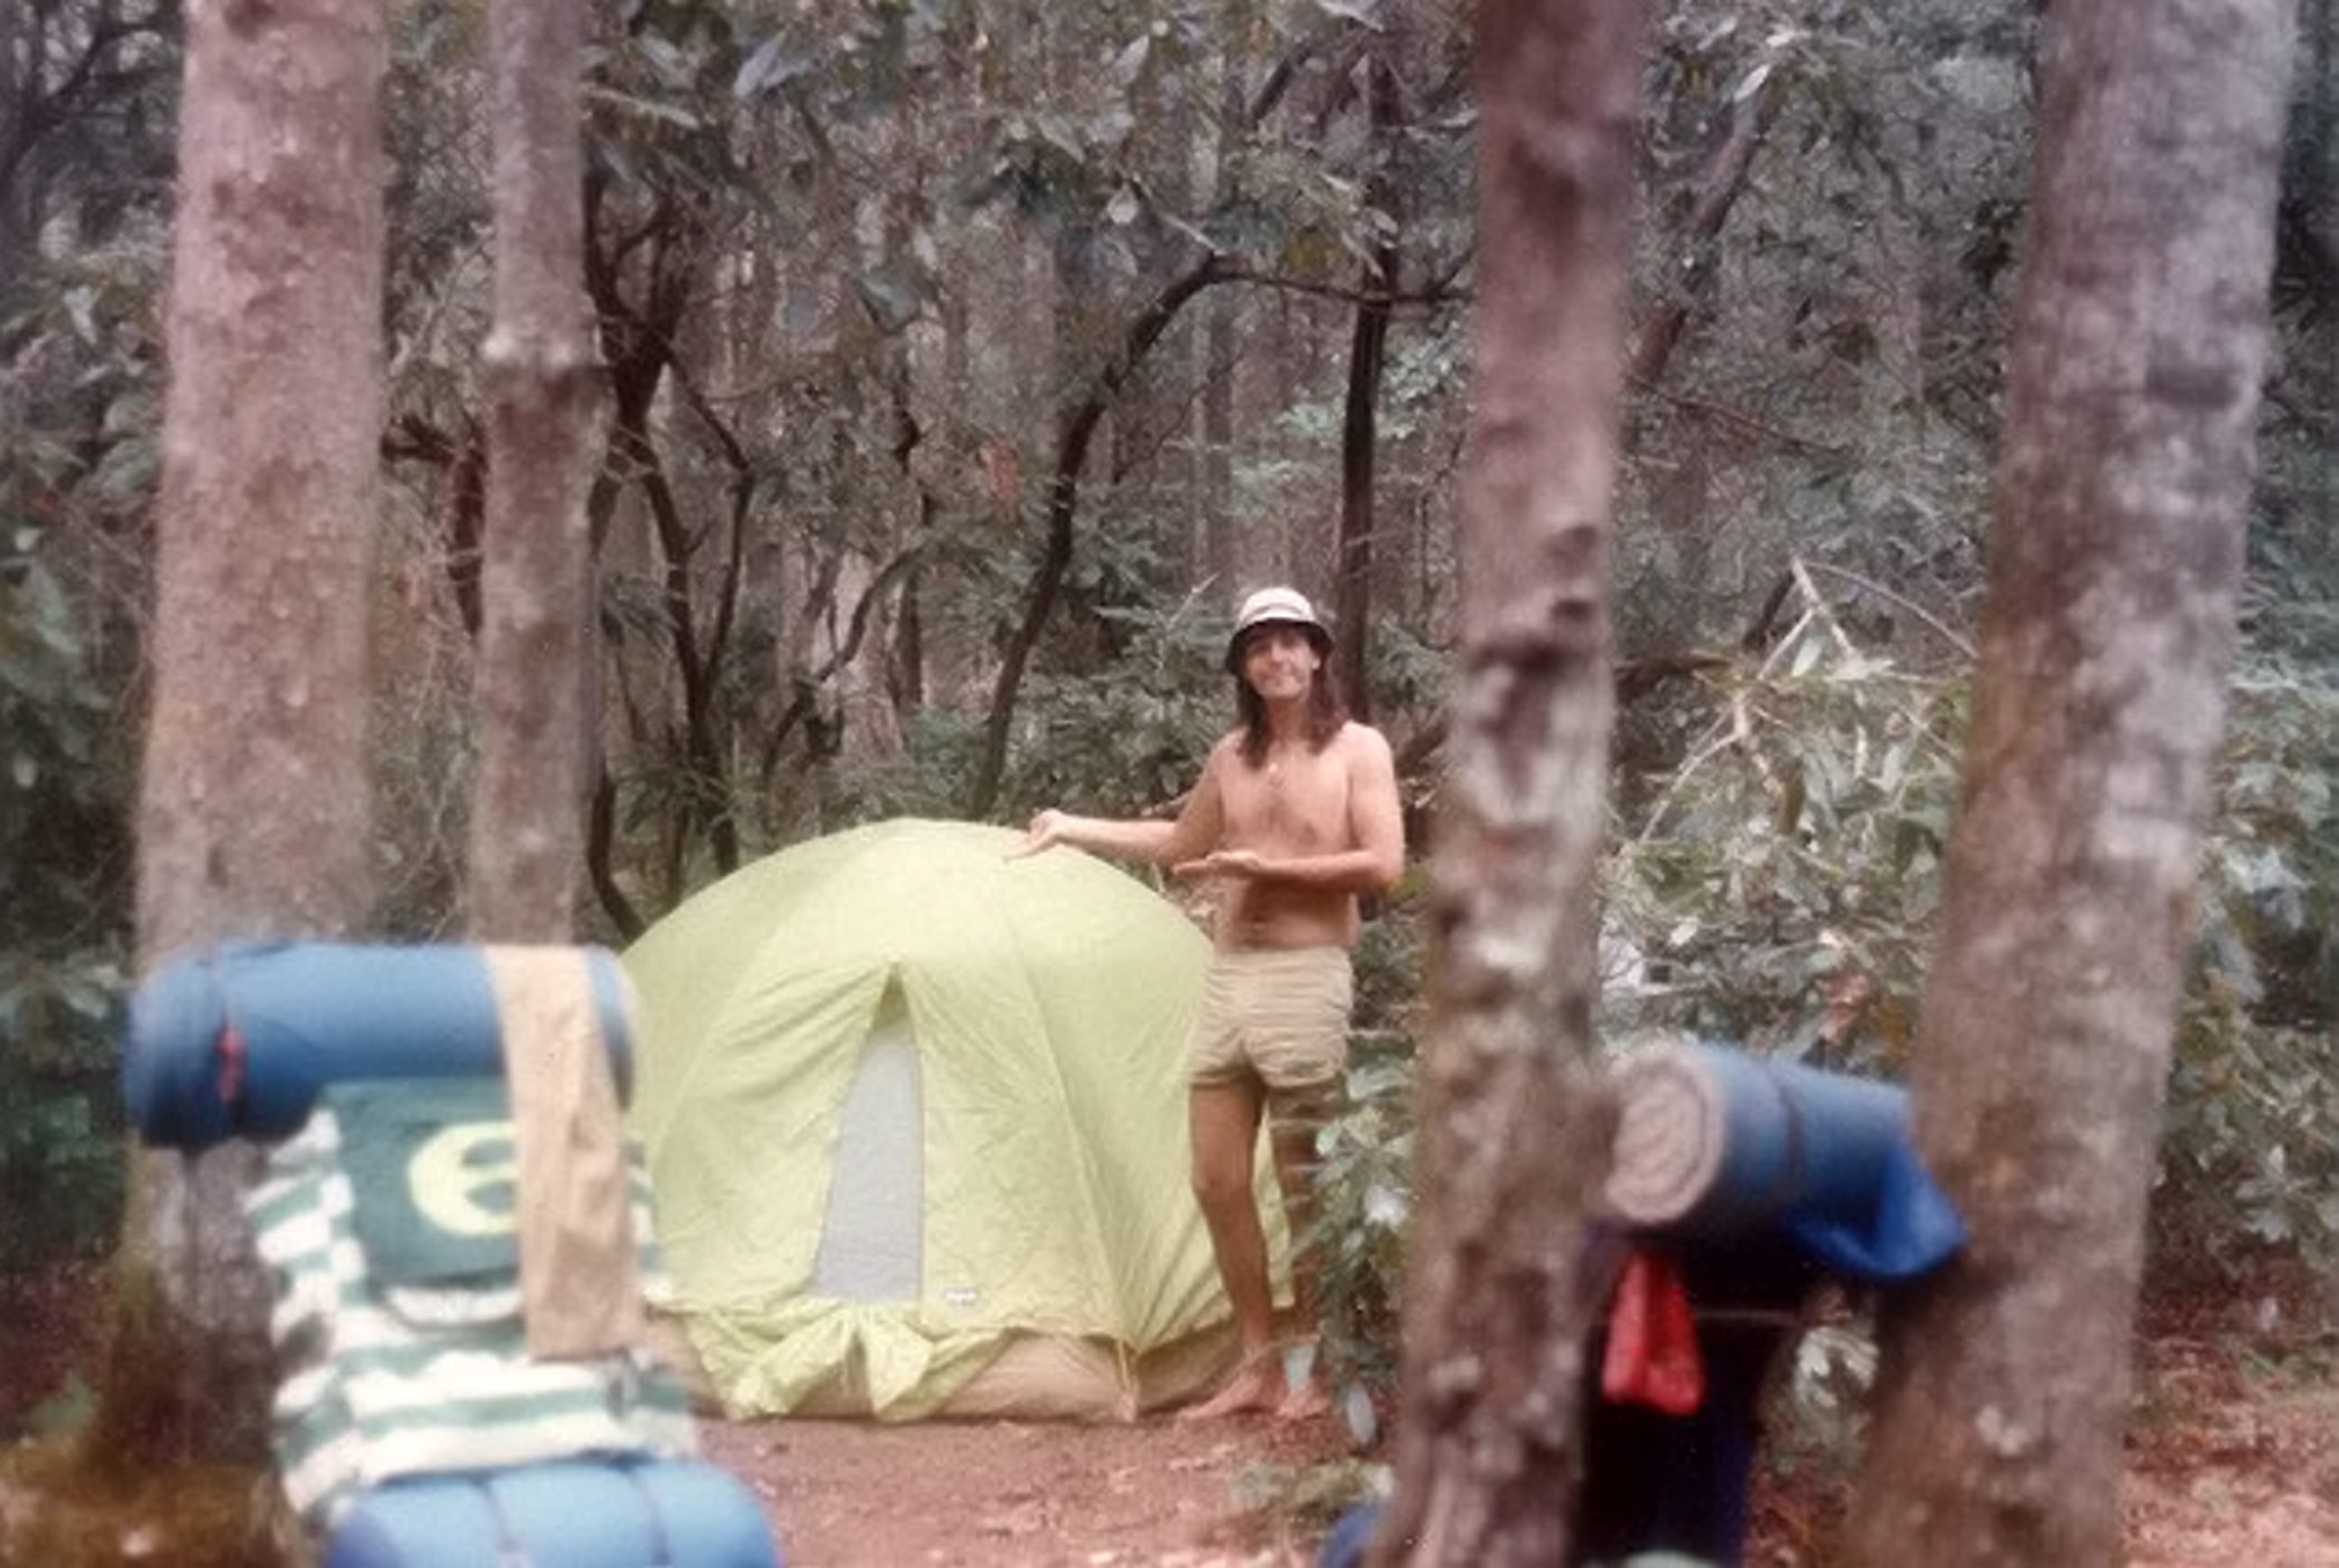 SWNS_BACKPACKING_08